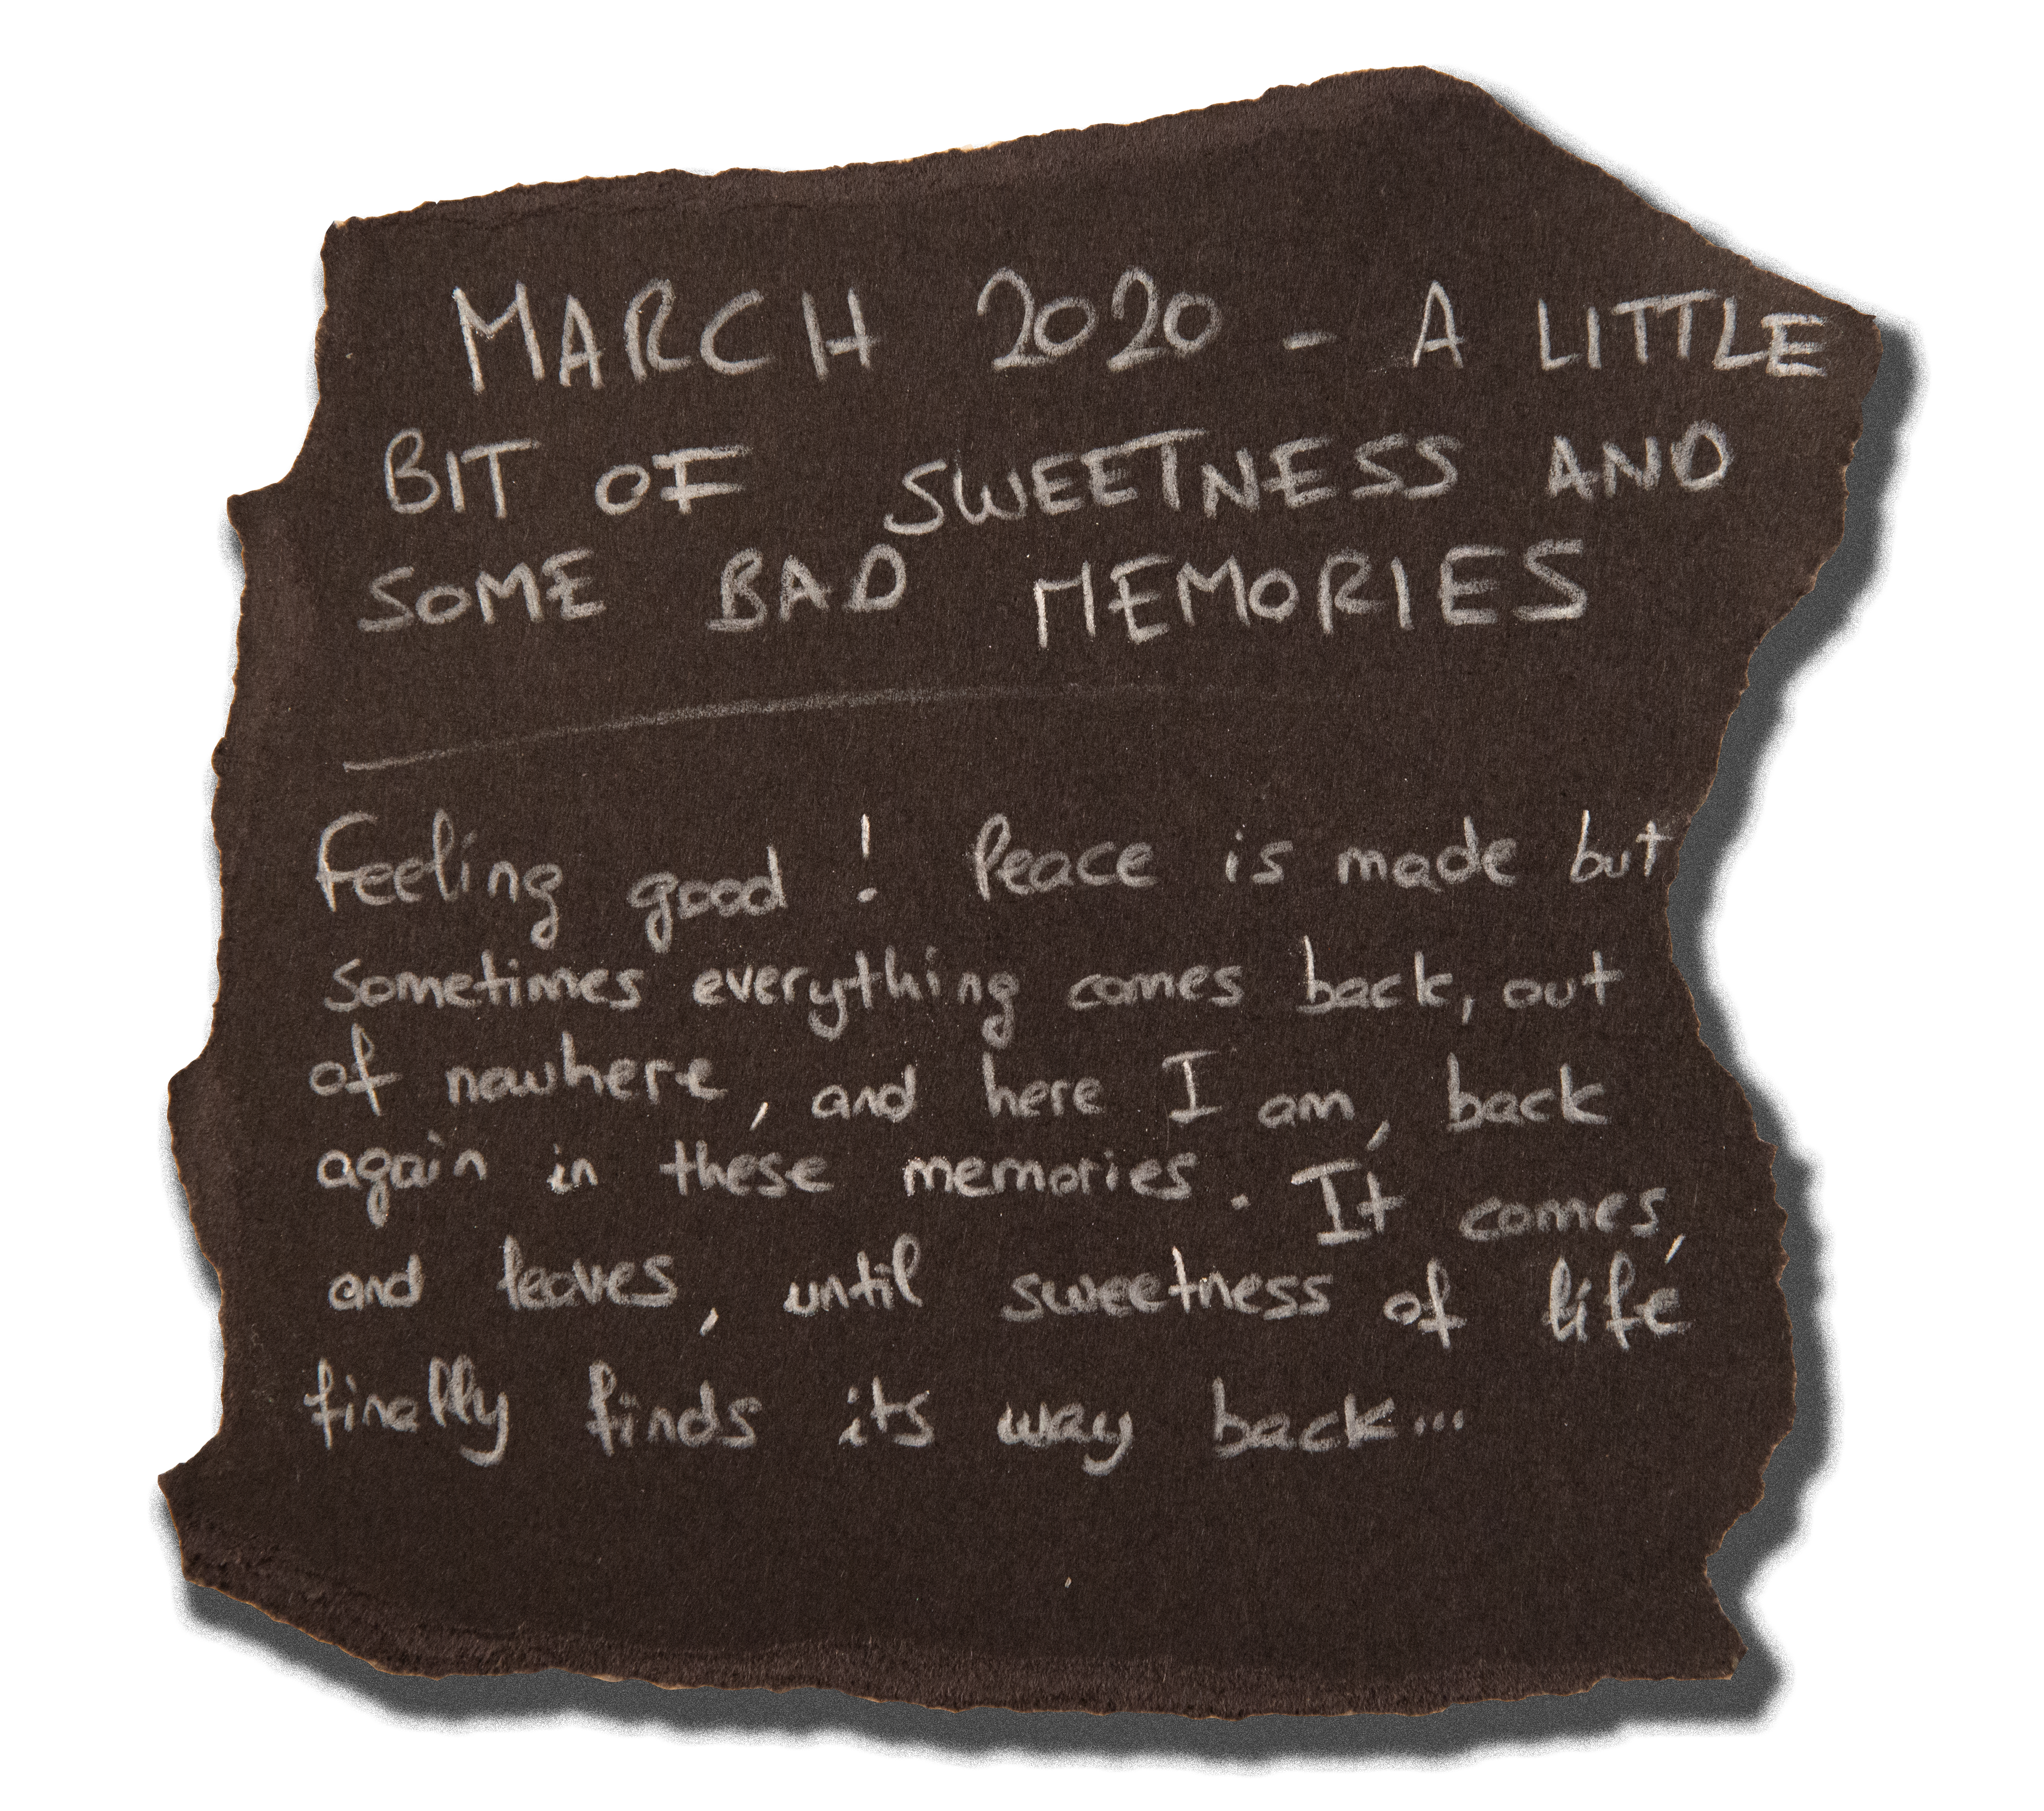 #11 - MARCH 2020 - A LITTLE BIT OF SWEETNESS AND SOME BAD MEMORIES